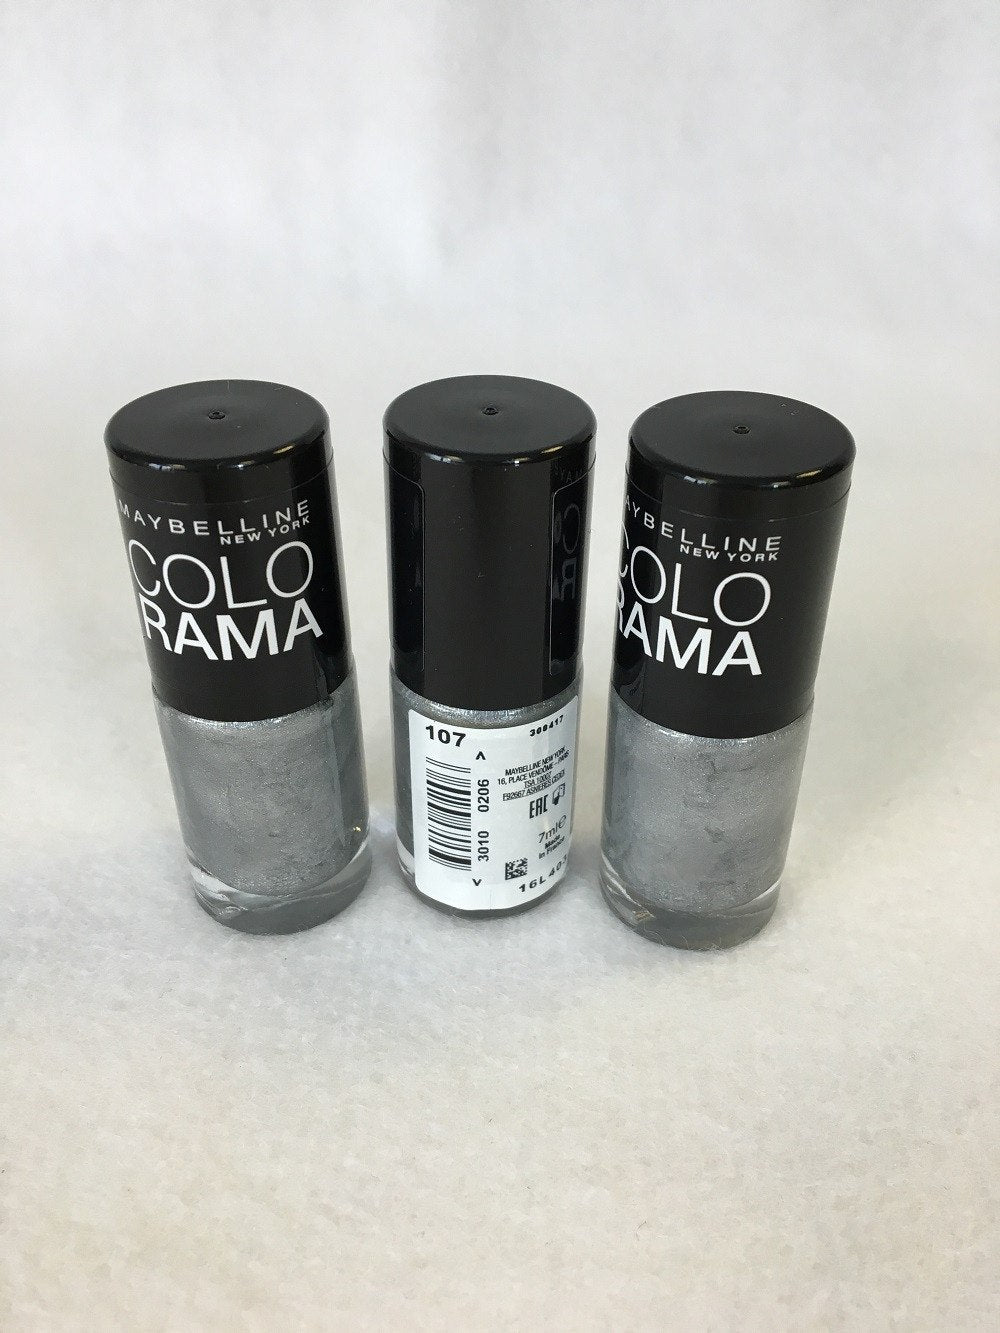 Maybelline Colorama Nail Polish. 107 Watery Waste x 12 (£0.40 each) - Fizzy Peach Ltd